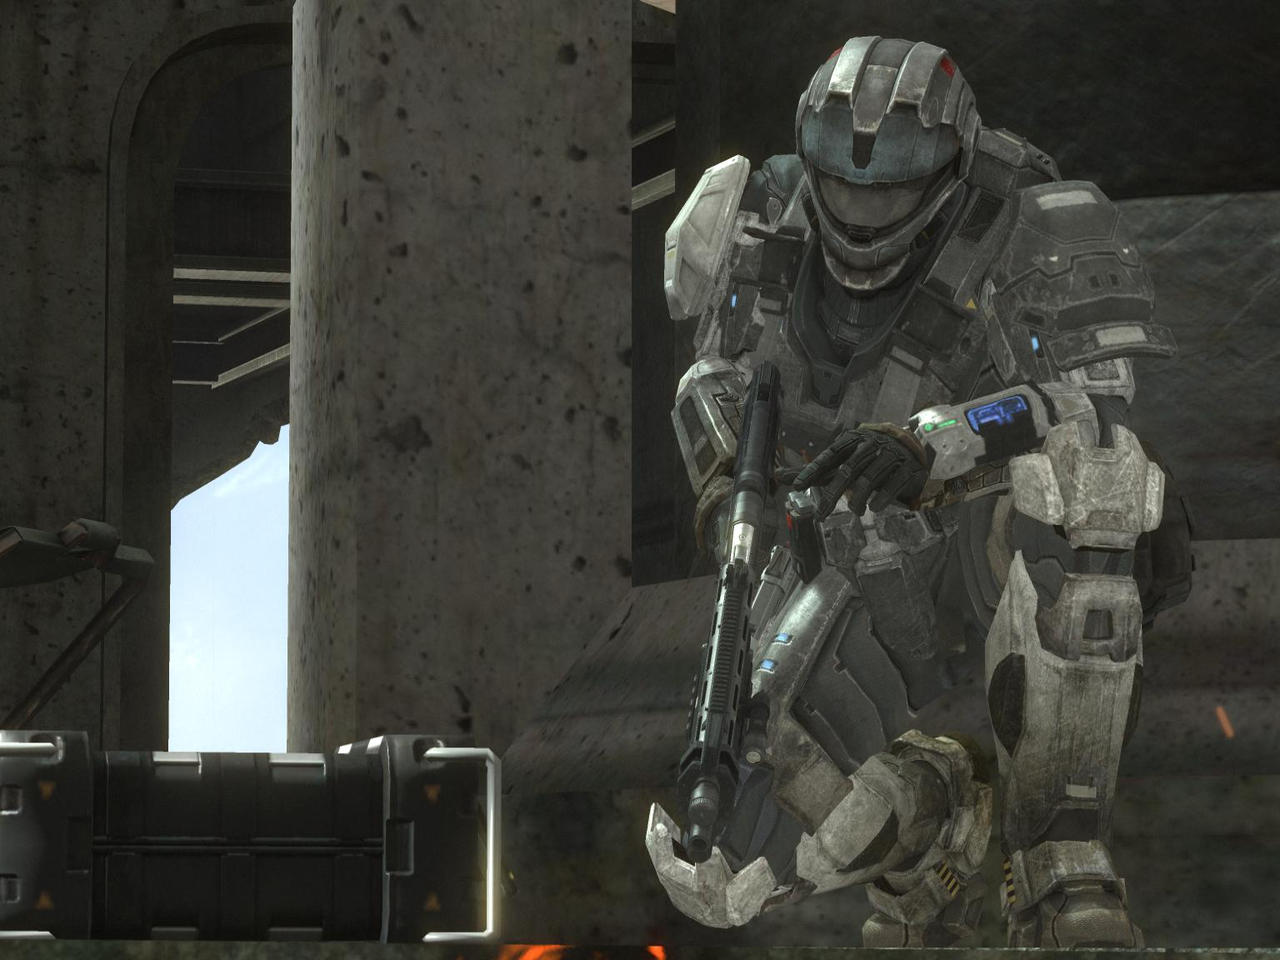 Halo Reach: Lance alternative by purpledragon104